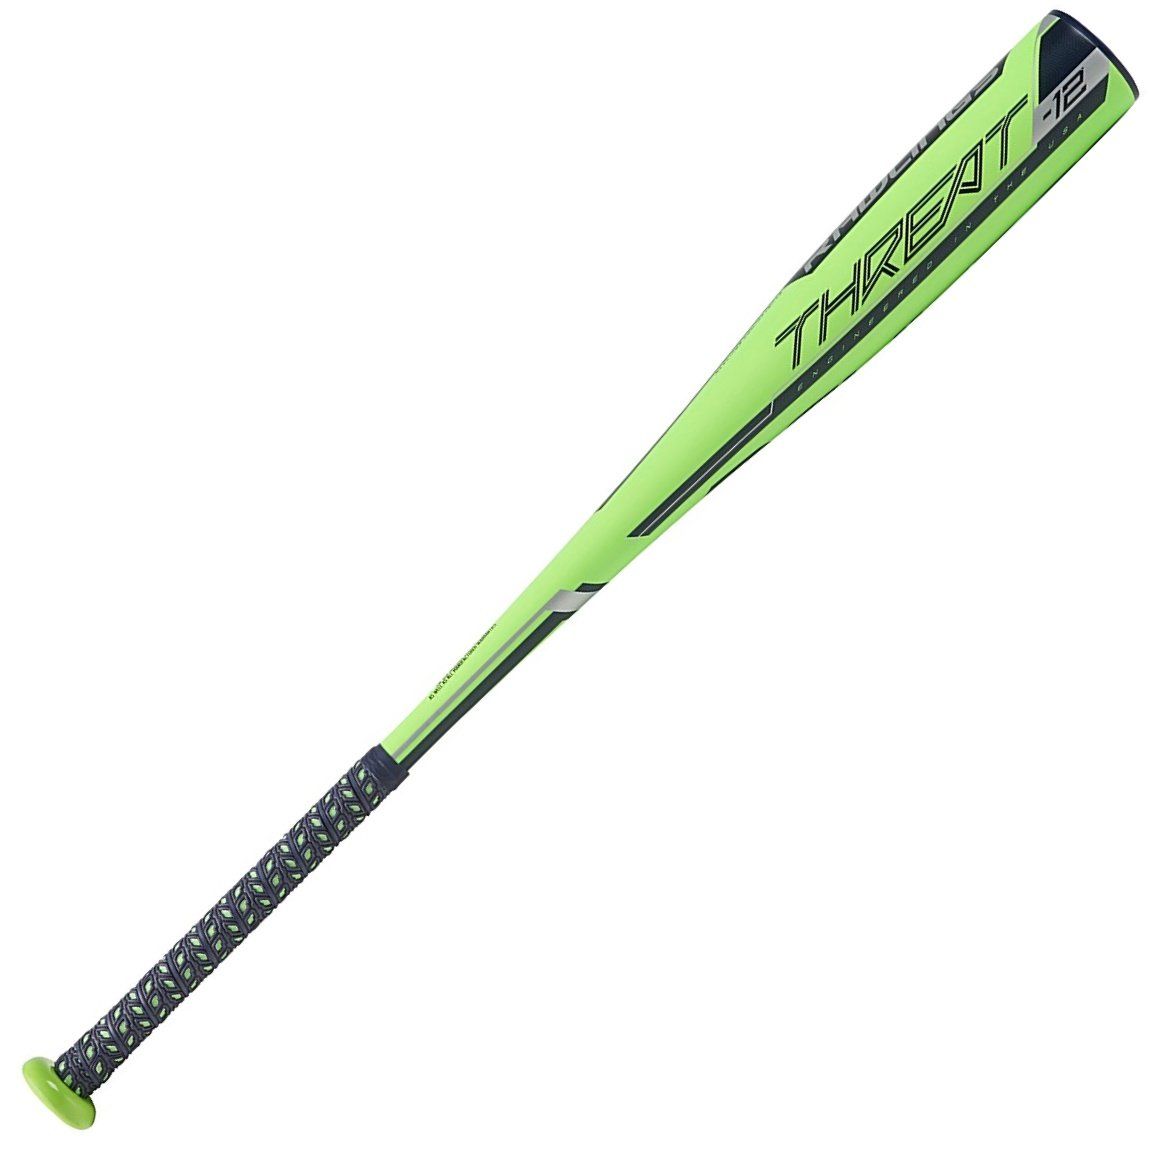 rawlings-2018-threat-usa-baseball-bat-28-inch-16-oz US9T12-2816  083321534942 100% composite design - increases trampoline and overall pop Ultra-lightweight construction